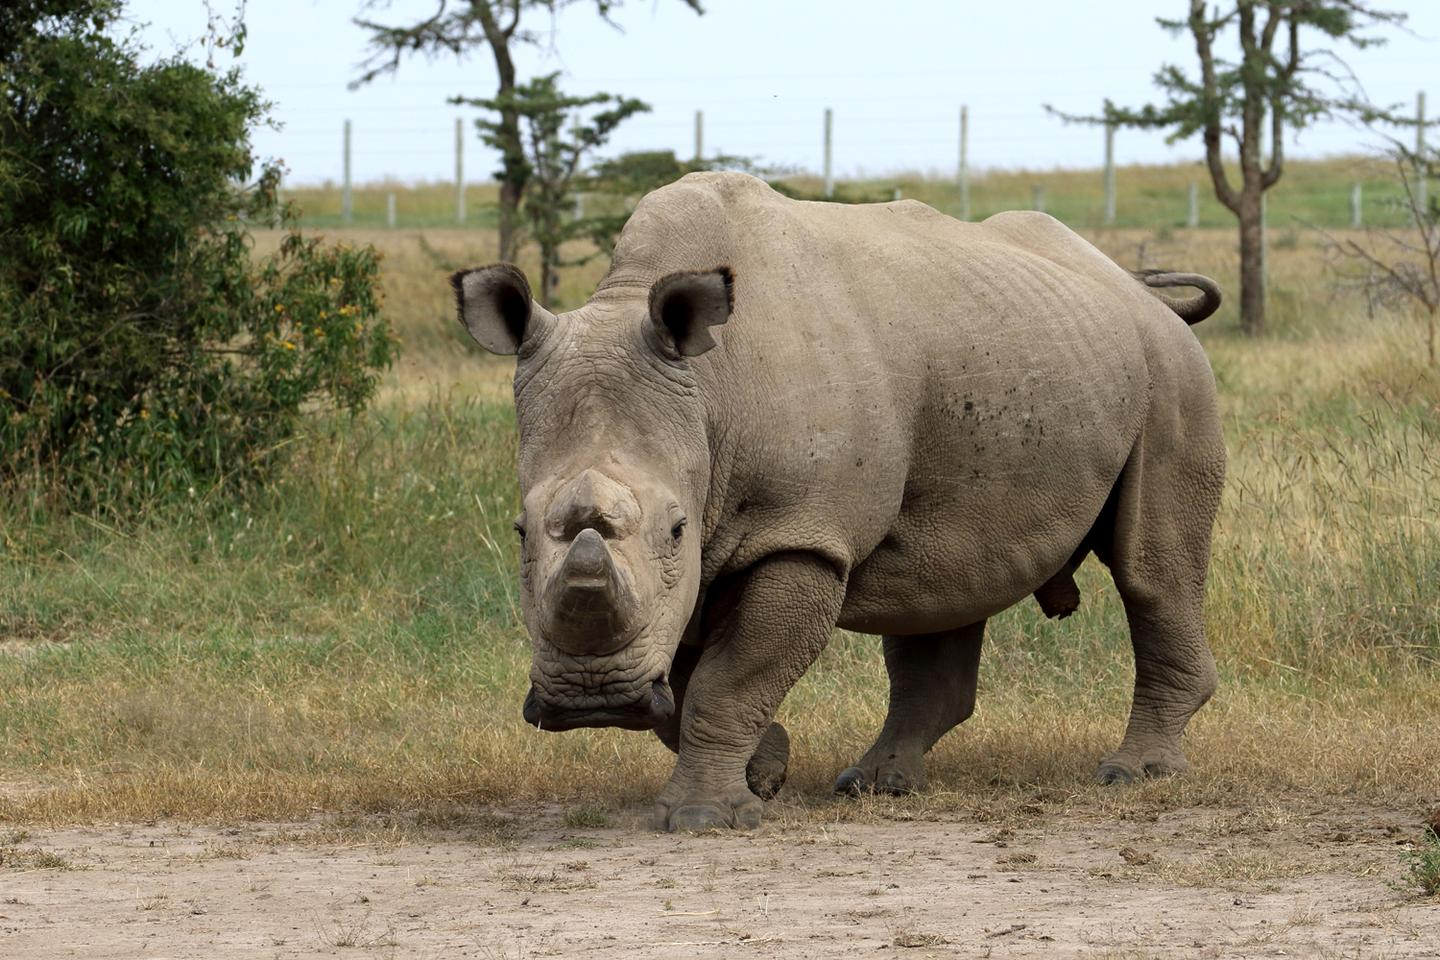 In December last year, Sudan, the last male northern white rhino, developed age-related wounds, infections and degenerative changes to his muscles and bones